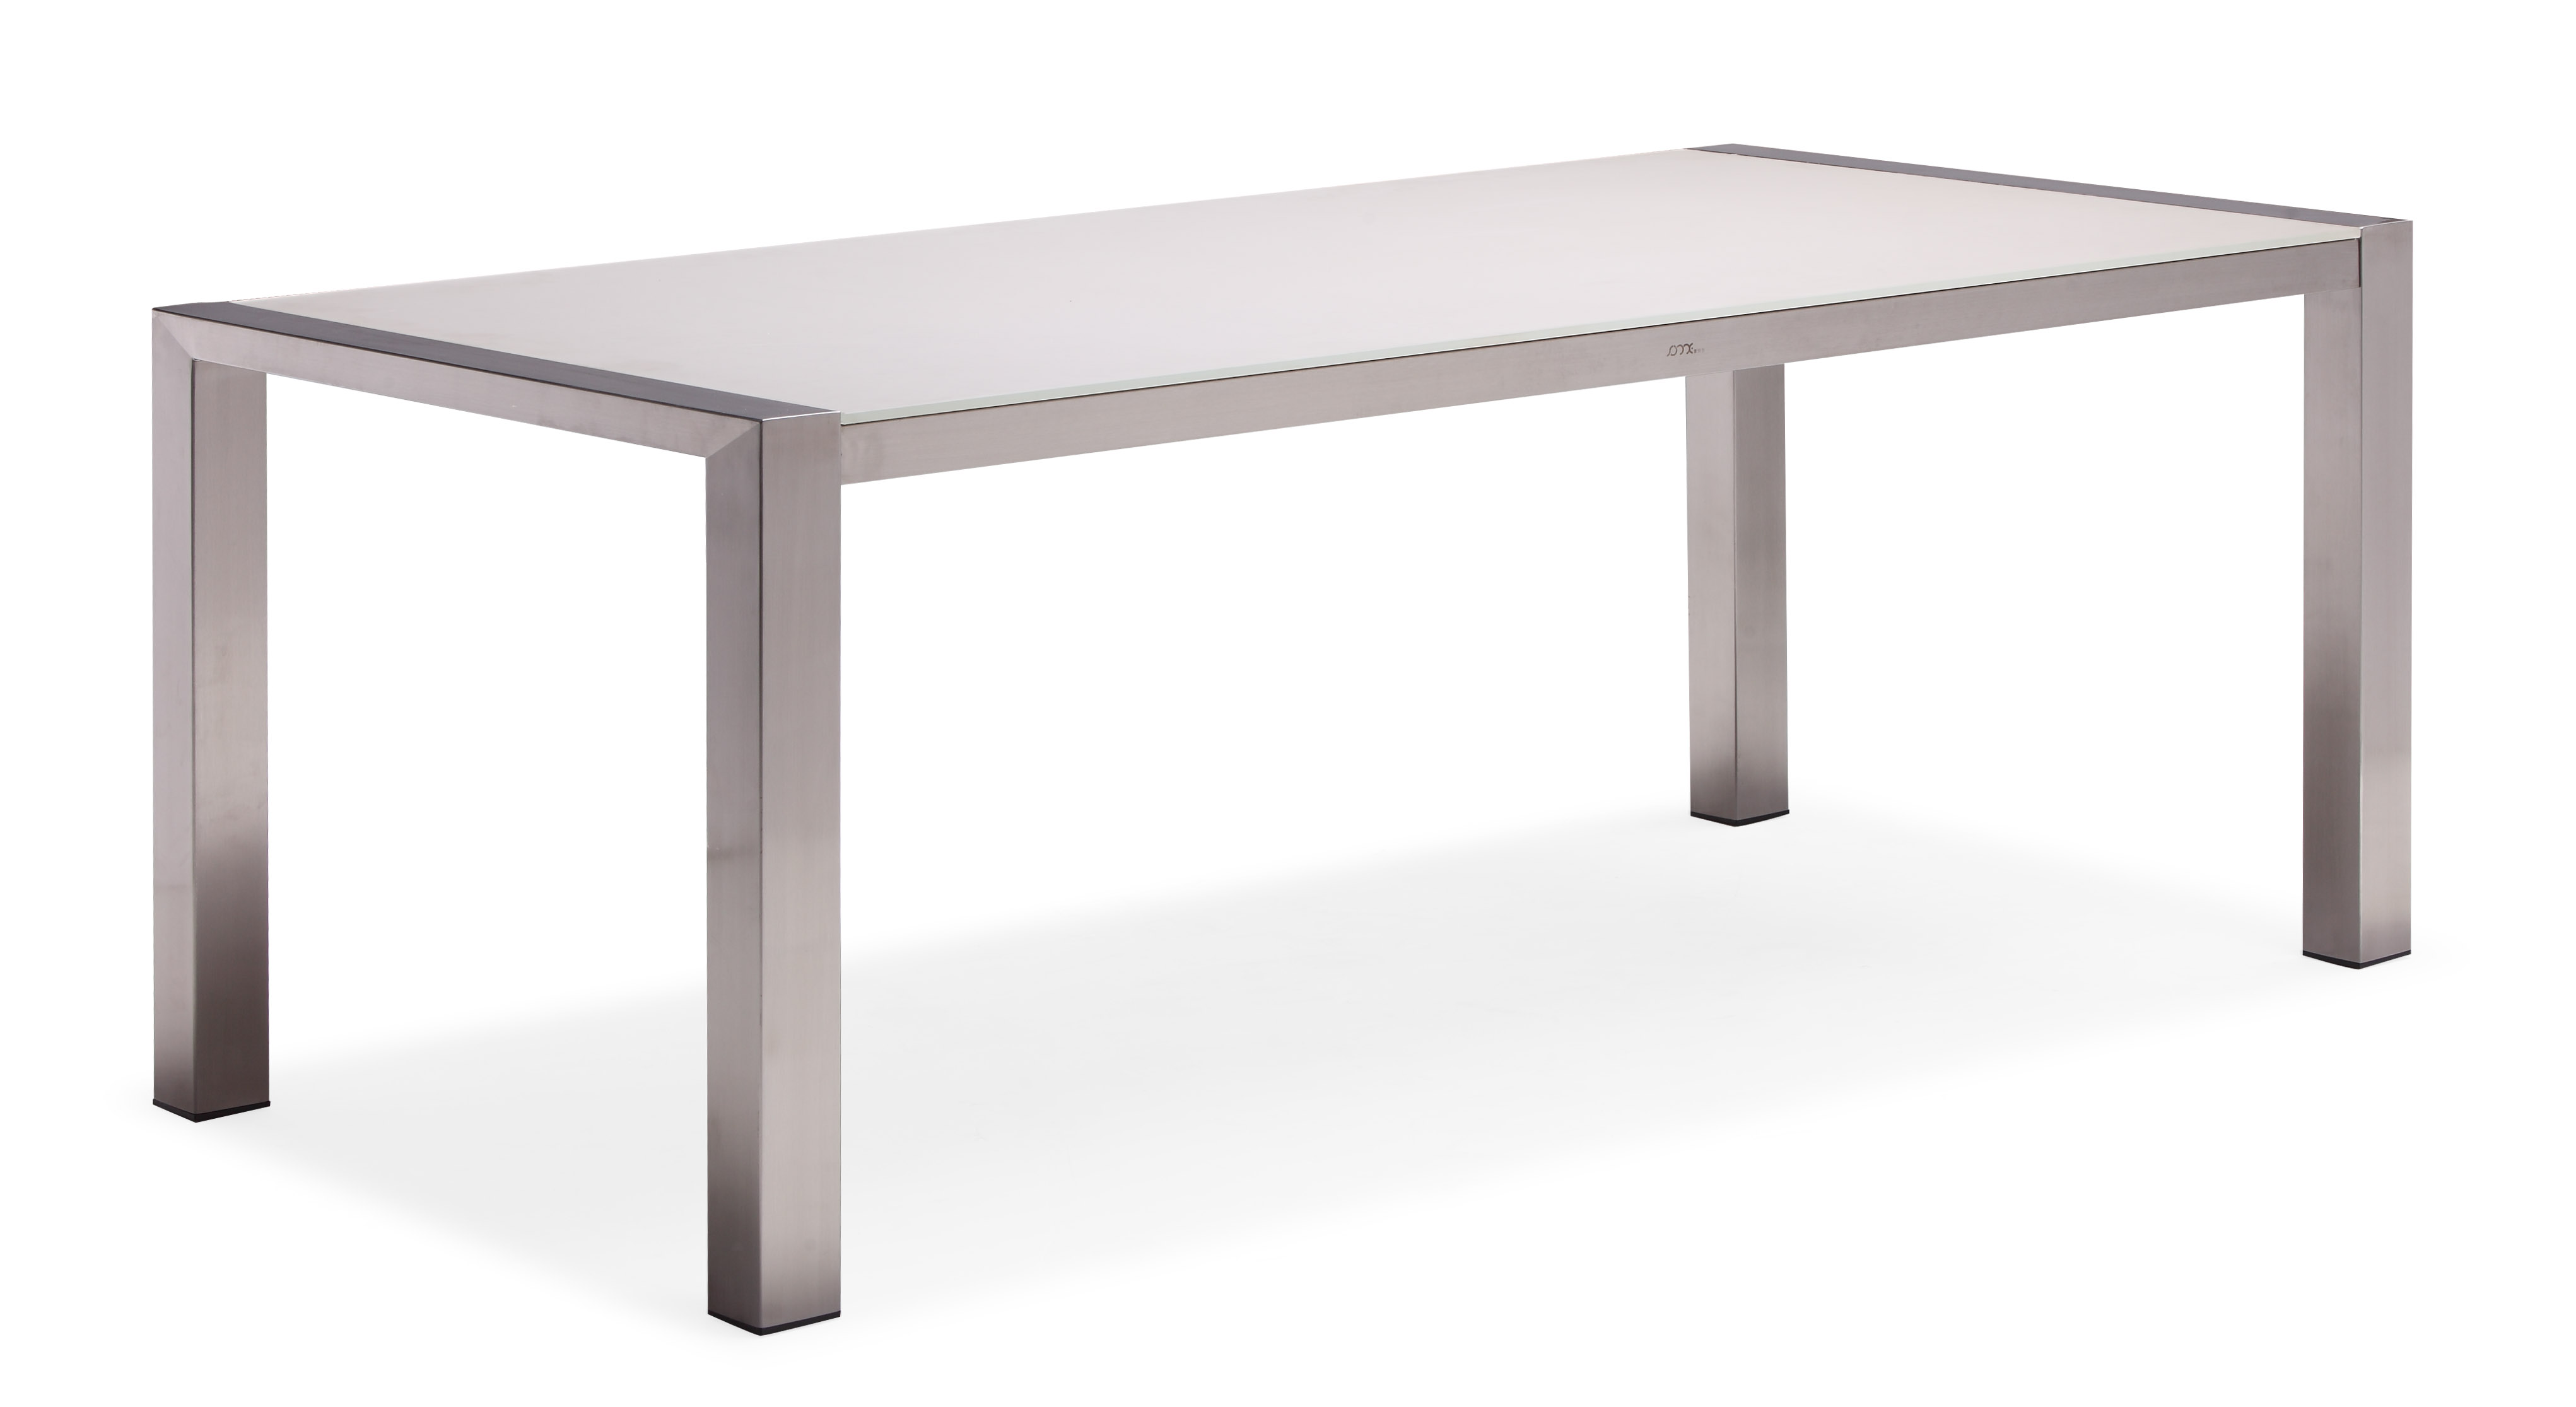 Metal outdoor dining furniture patio dining table (T009G)